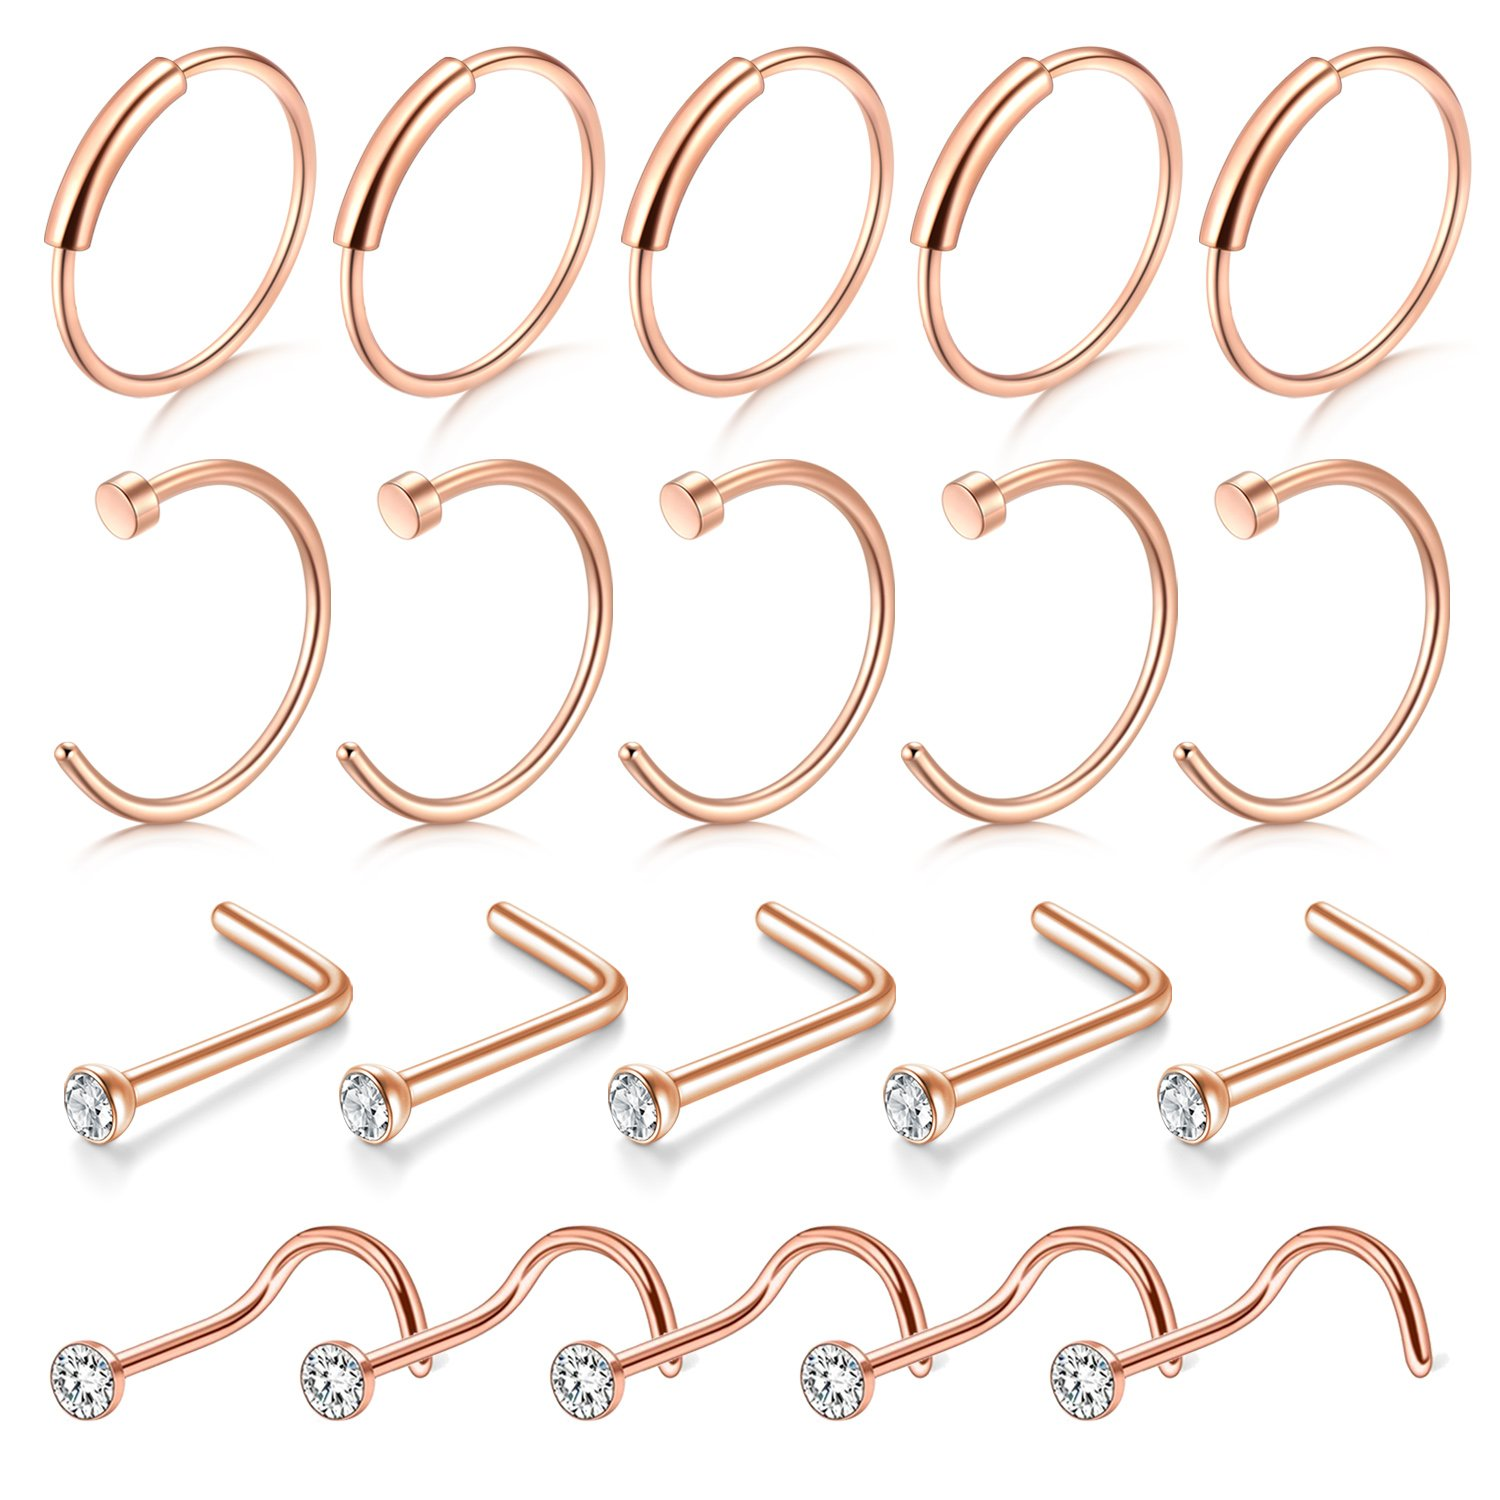 D.Bella Rose Gold Nose Ring Hoop, 20G Rose Gold Stainless Steel Nose Ring Studs for Body Piercing Jewelry 8mm